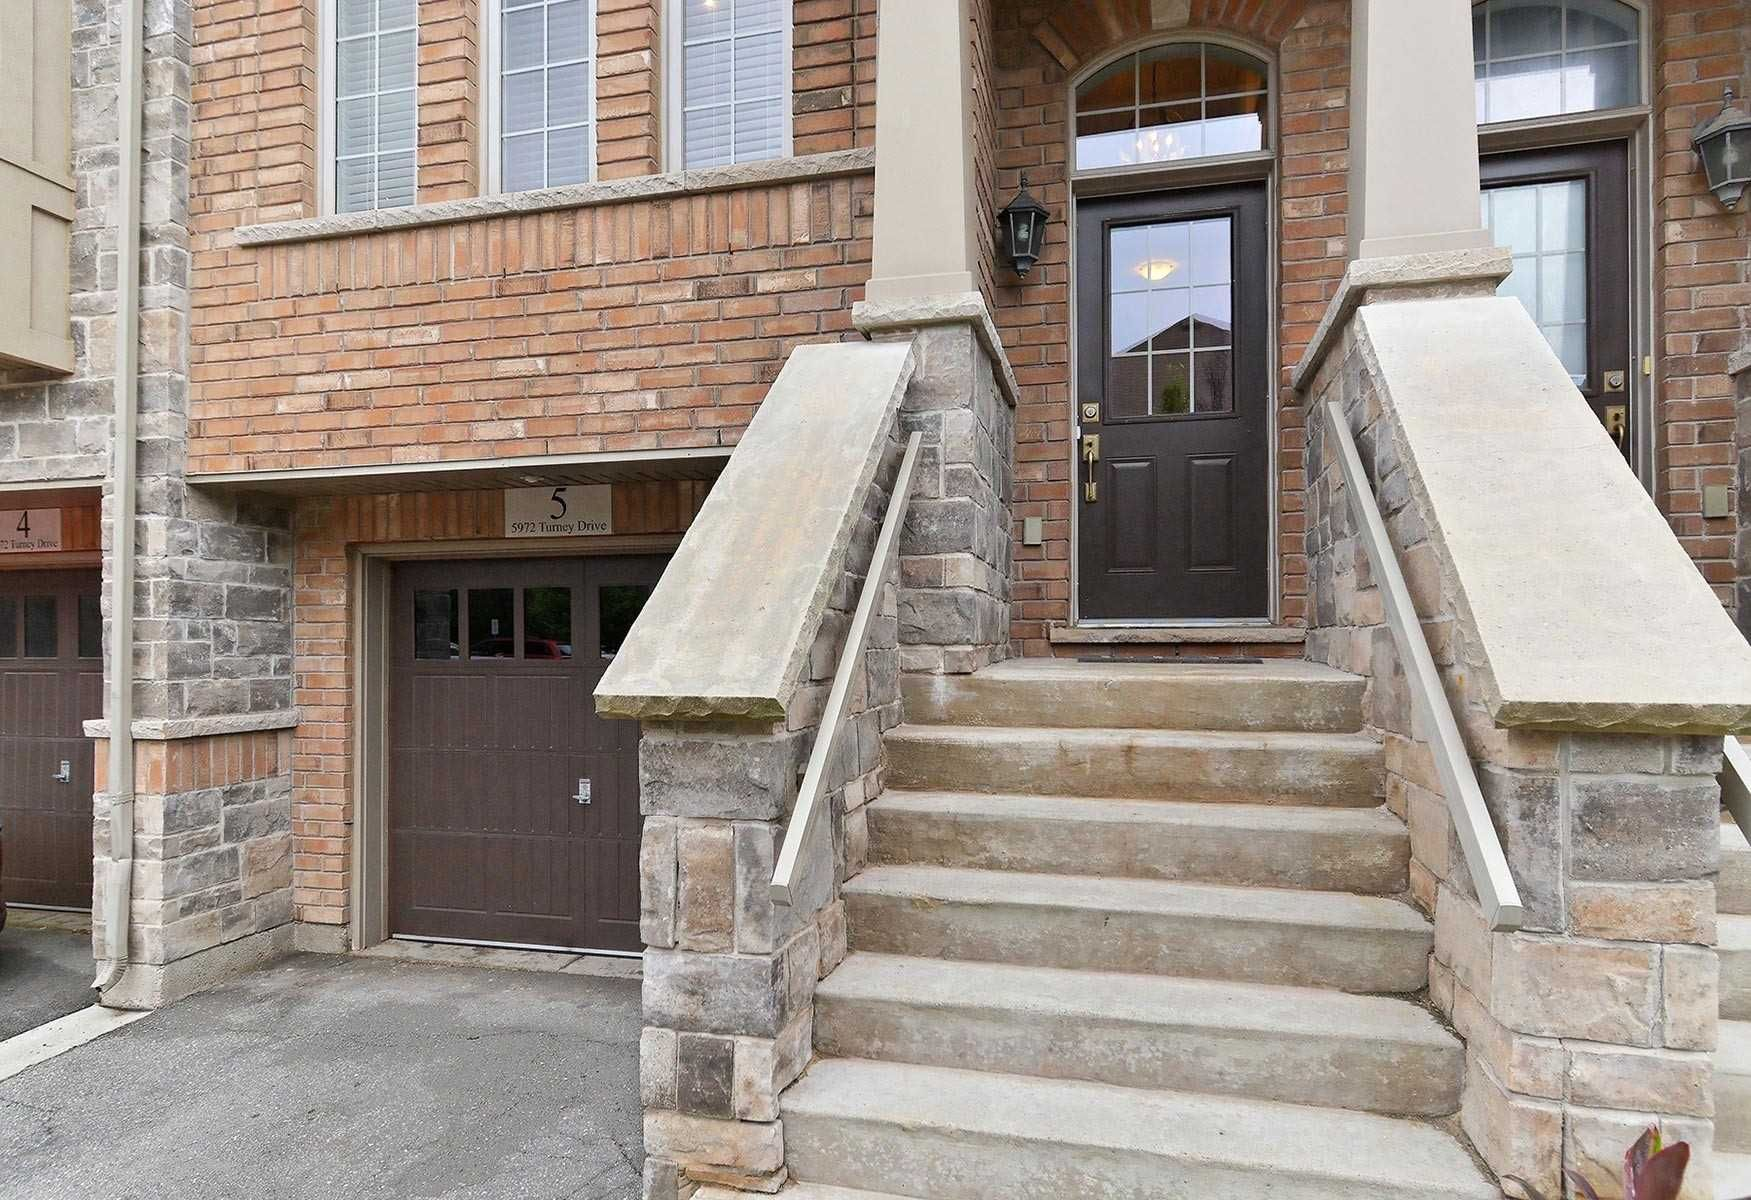 5972 Turney Dr, unit 5 for sale in Toronto - image #2